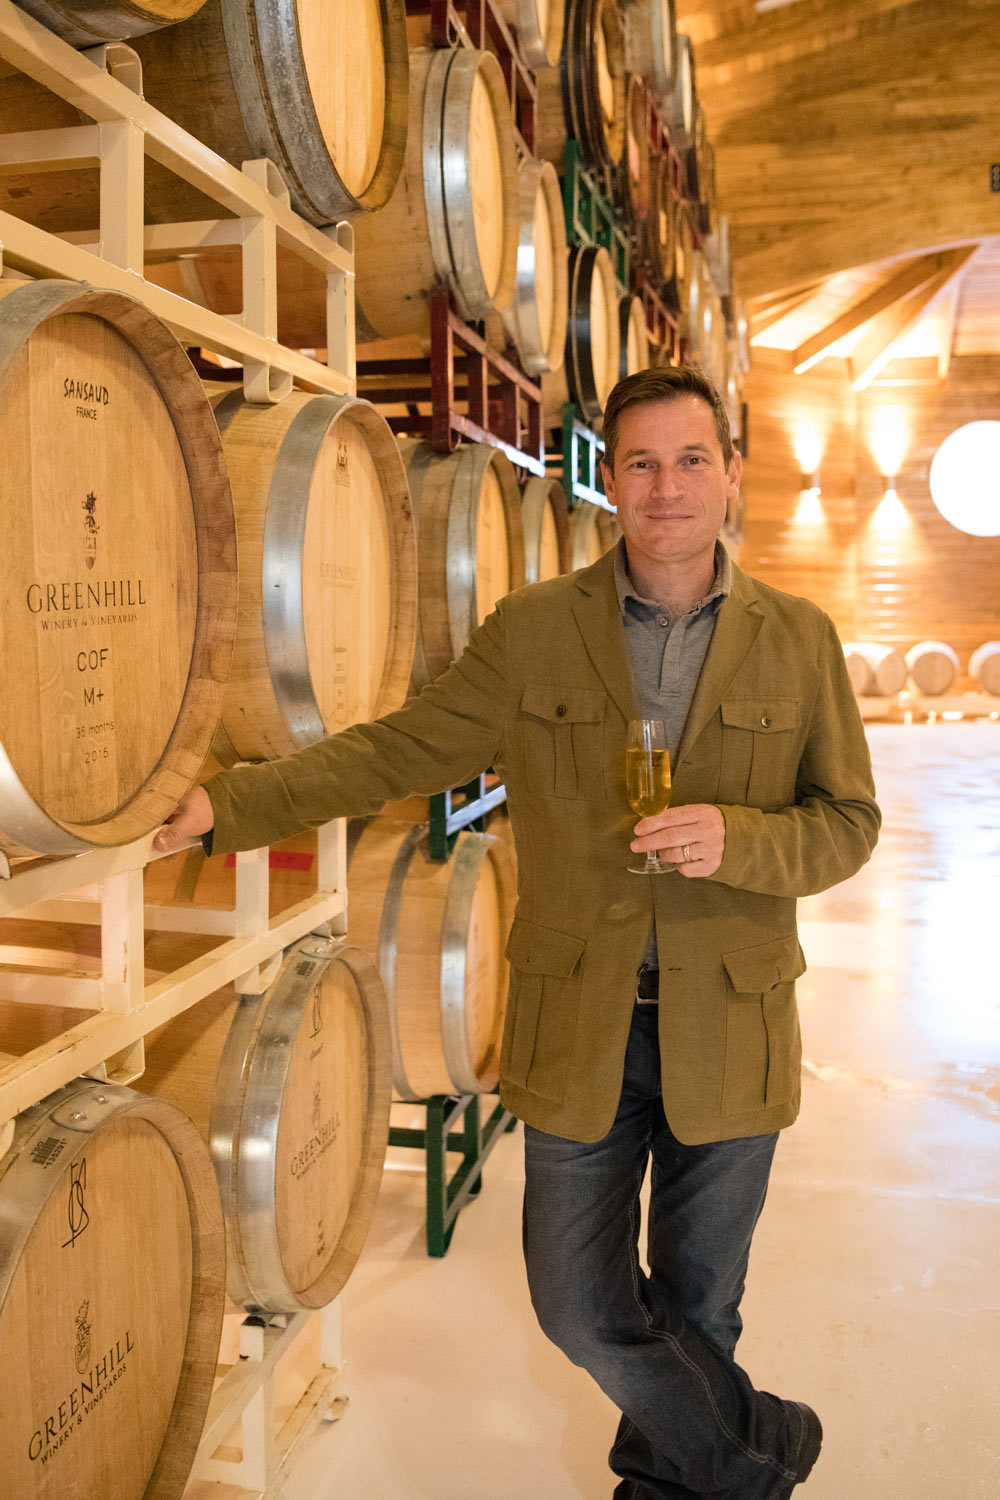 Greenhill winemaker Sébastien Marquet in the new barrel room.